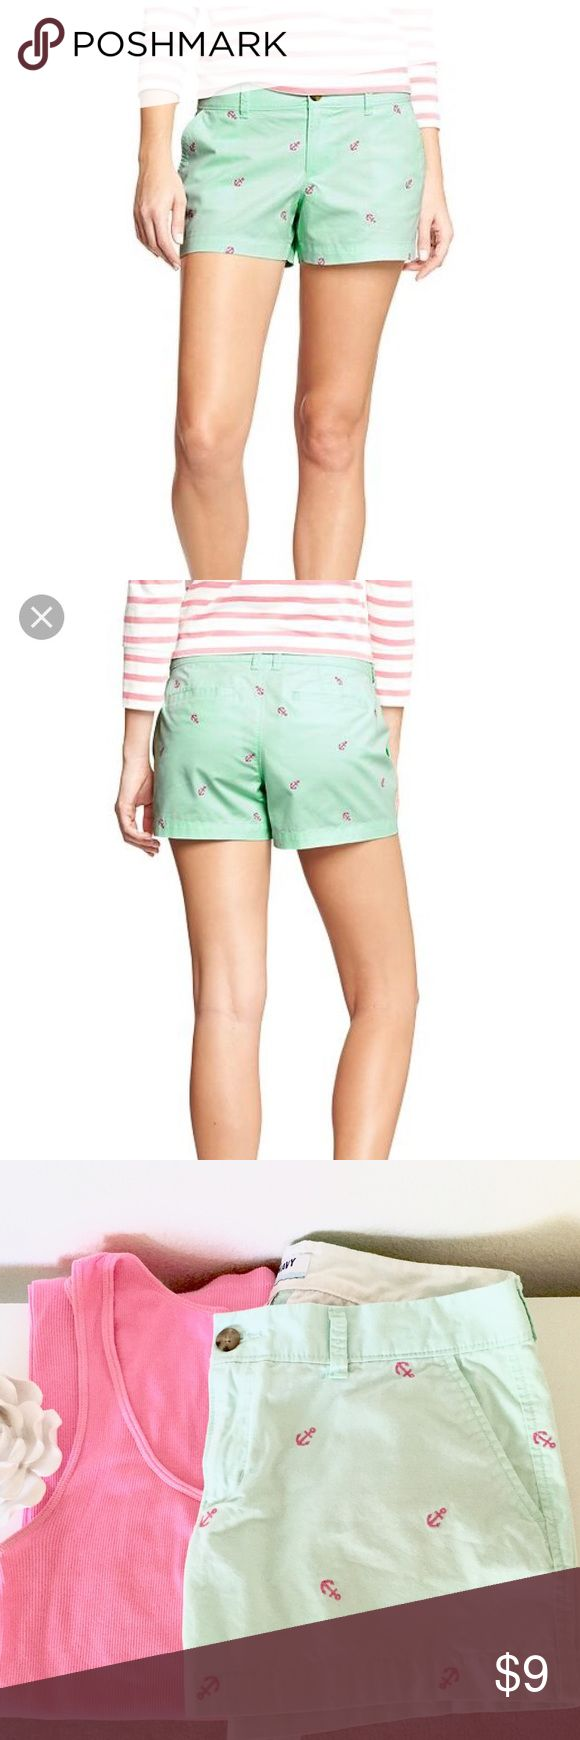 Old Navy mint shorts. Old Navy mint shorts with pink anchors. 3 inch inseam. 100% cotton. Old Navy Shorts